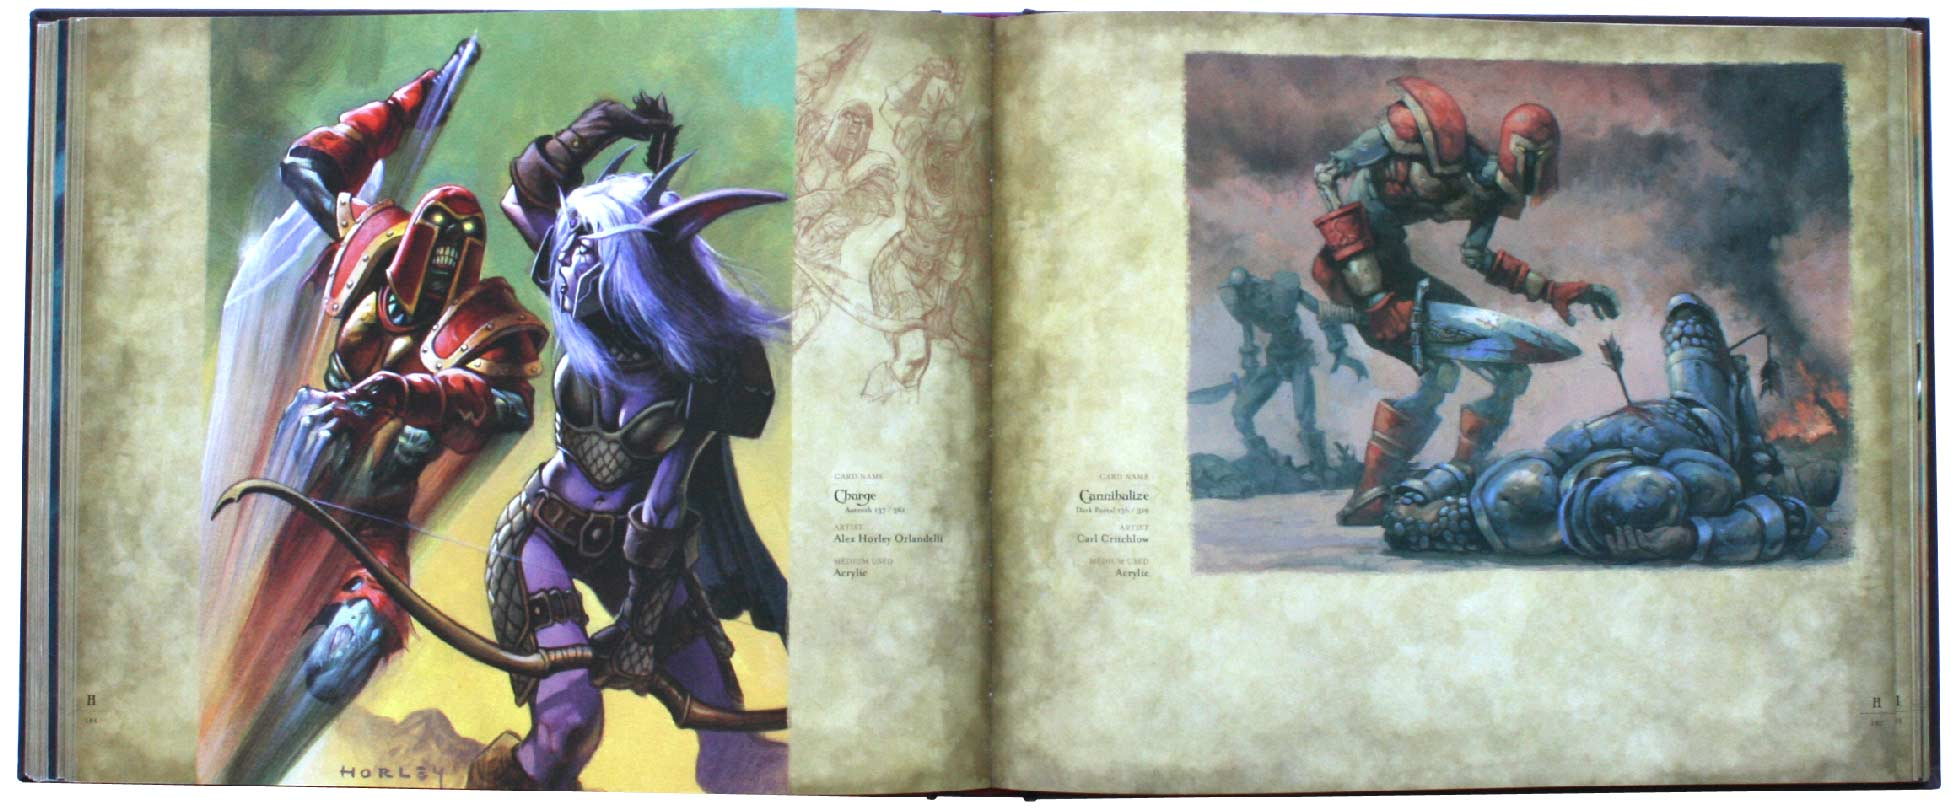 page 186 et 187 de l&#039;art book : The Art of the Trading Card Game (World of Wacraft)